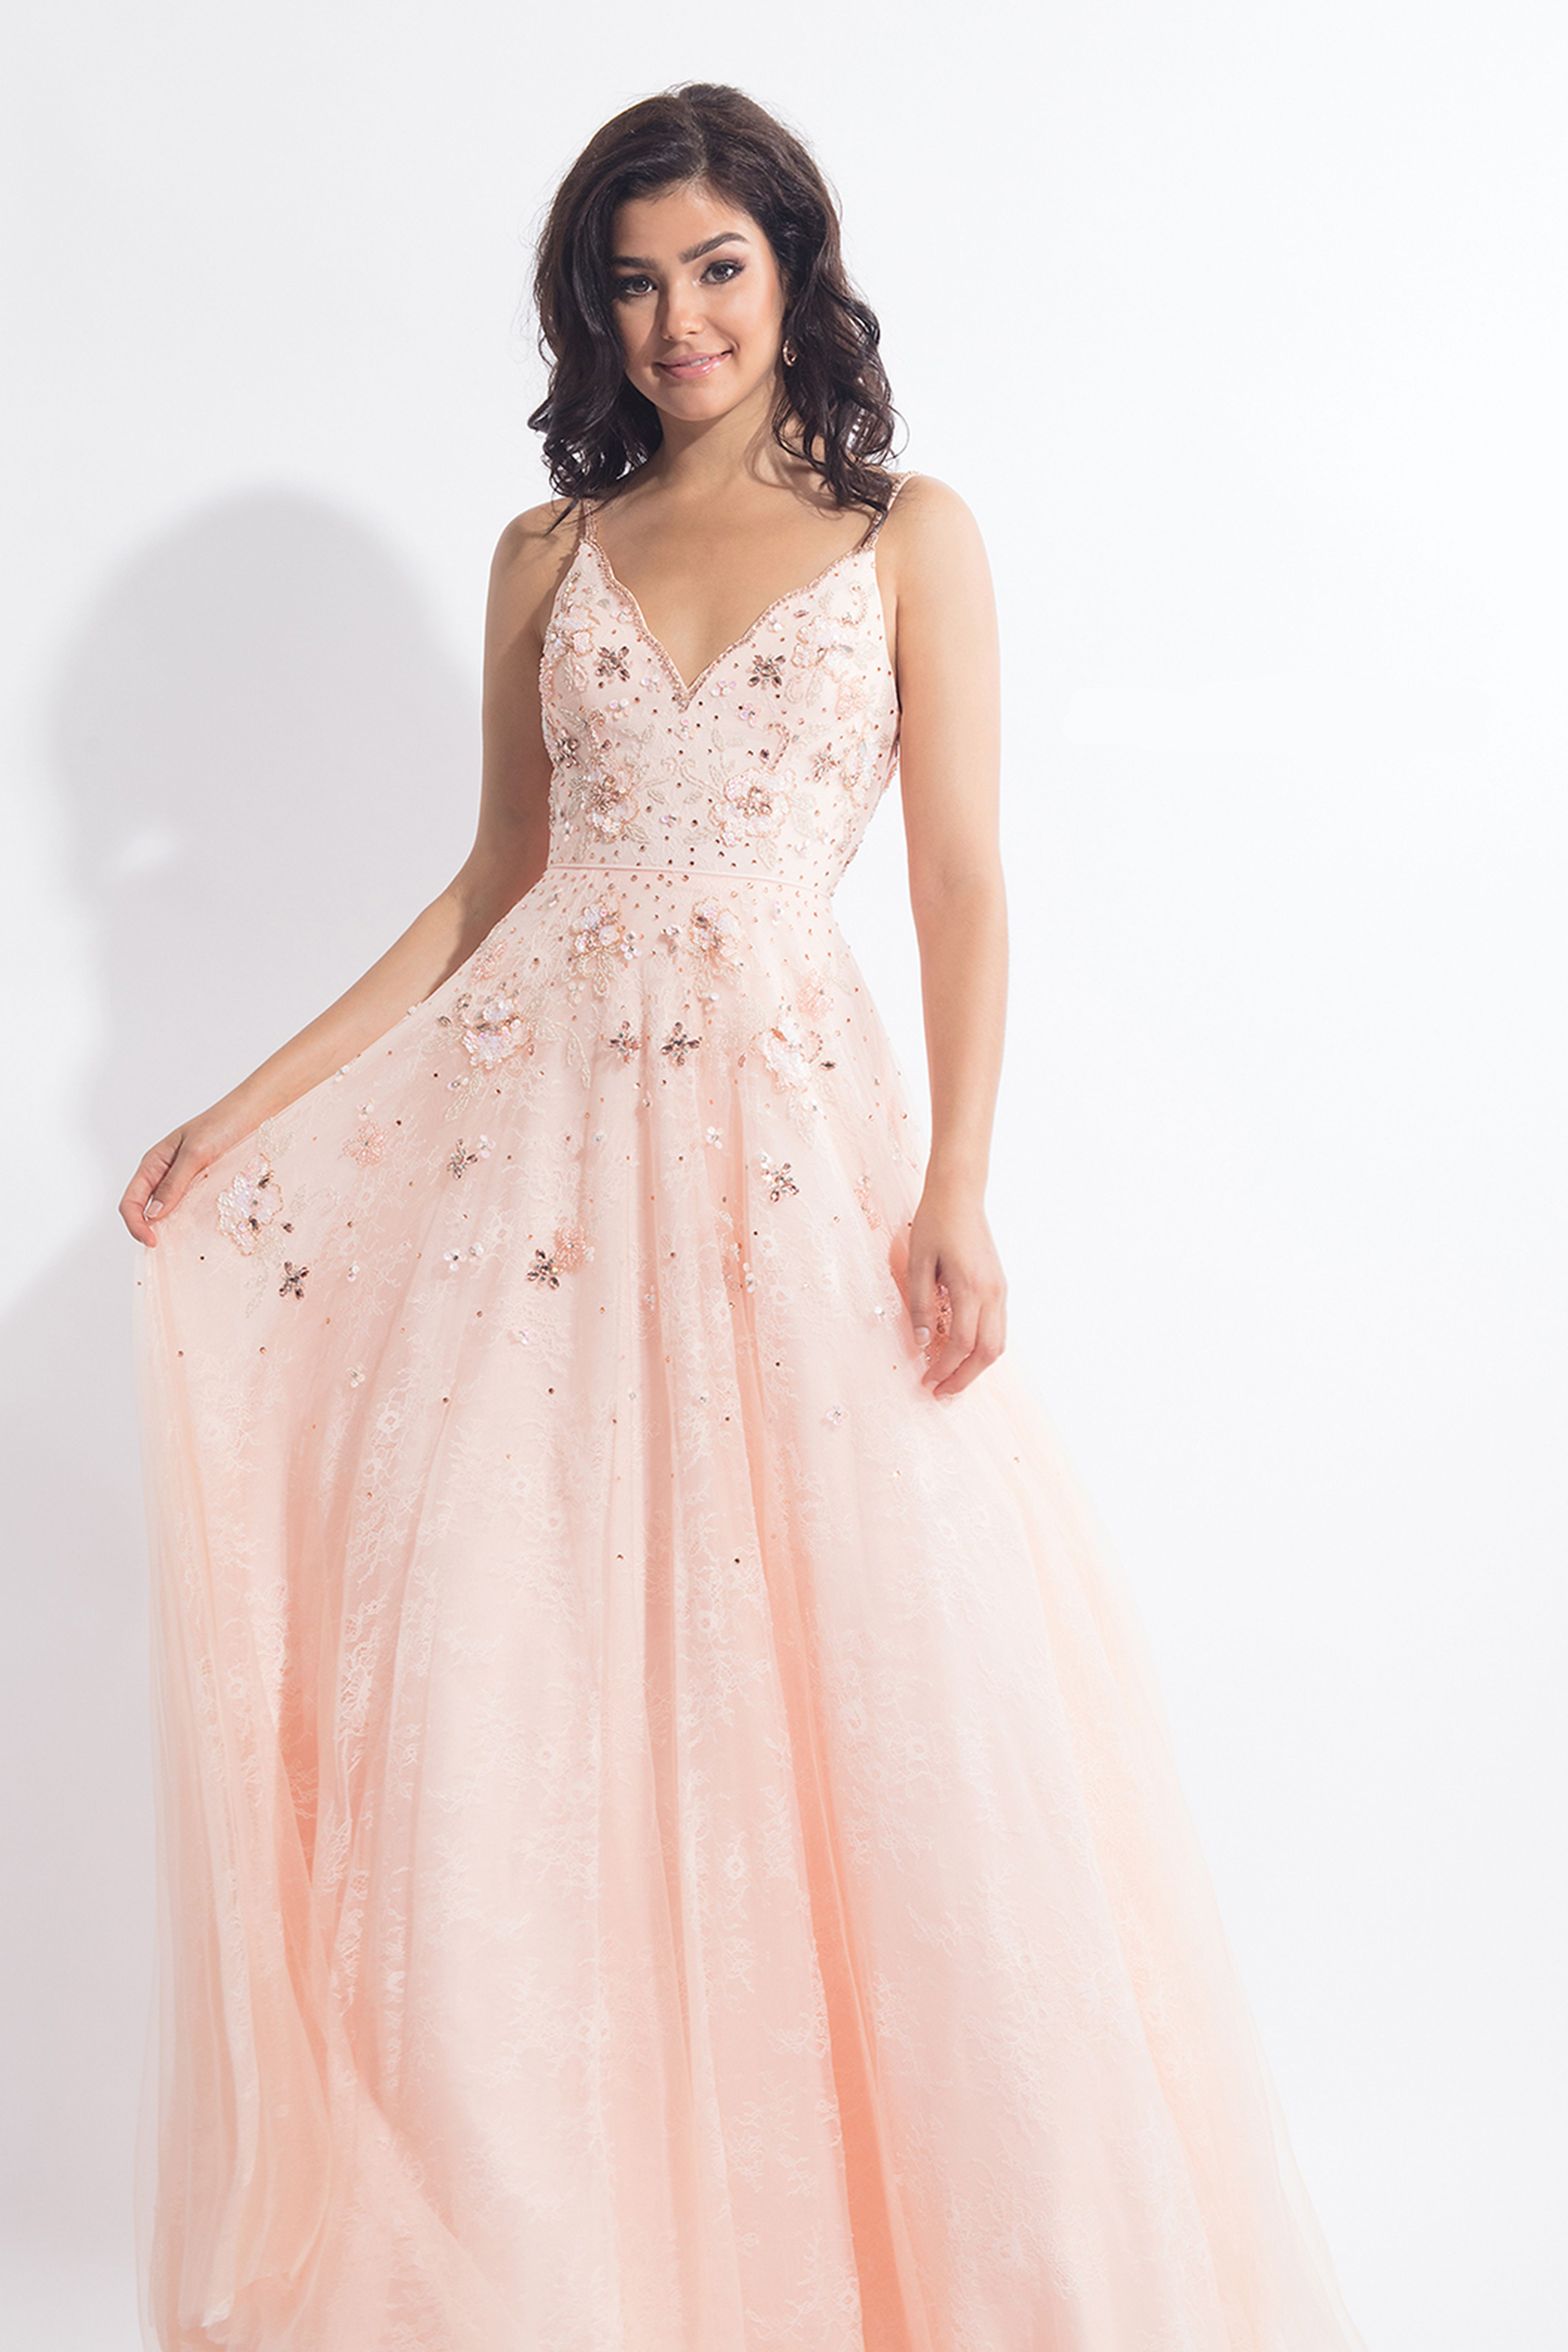 15 stunning vintage prom dresses of 2018 for a retro look